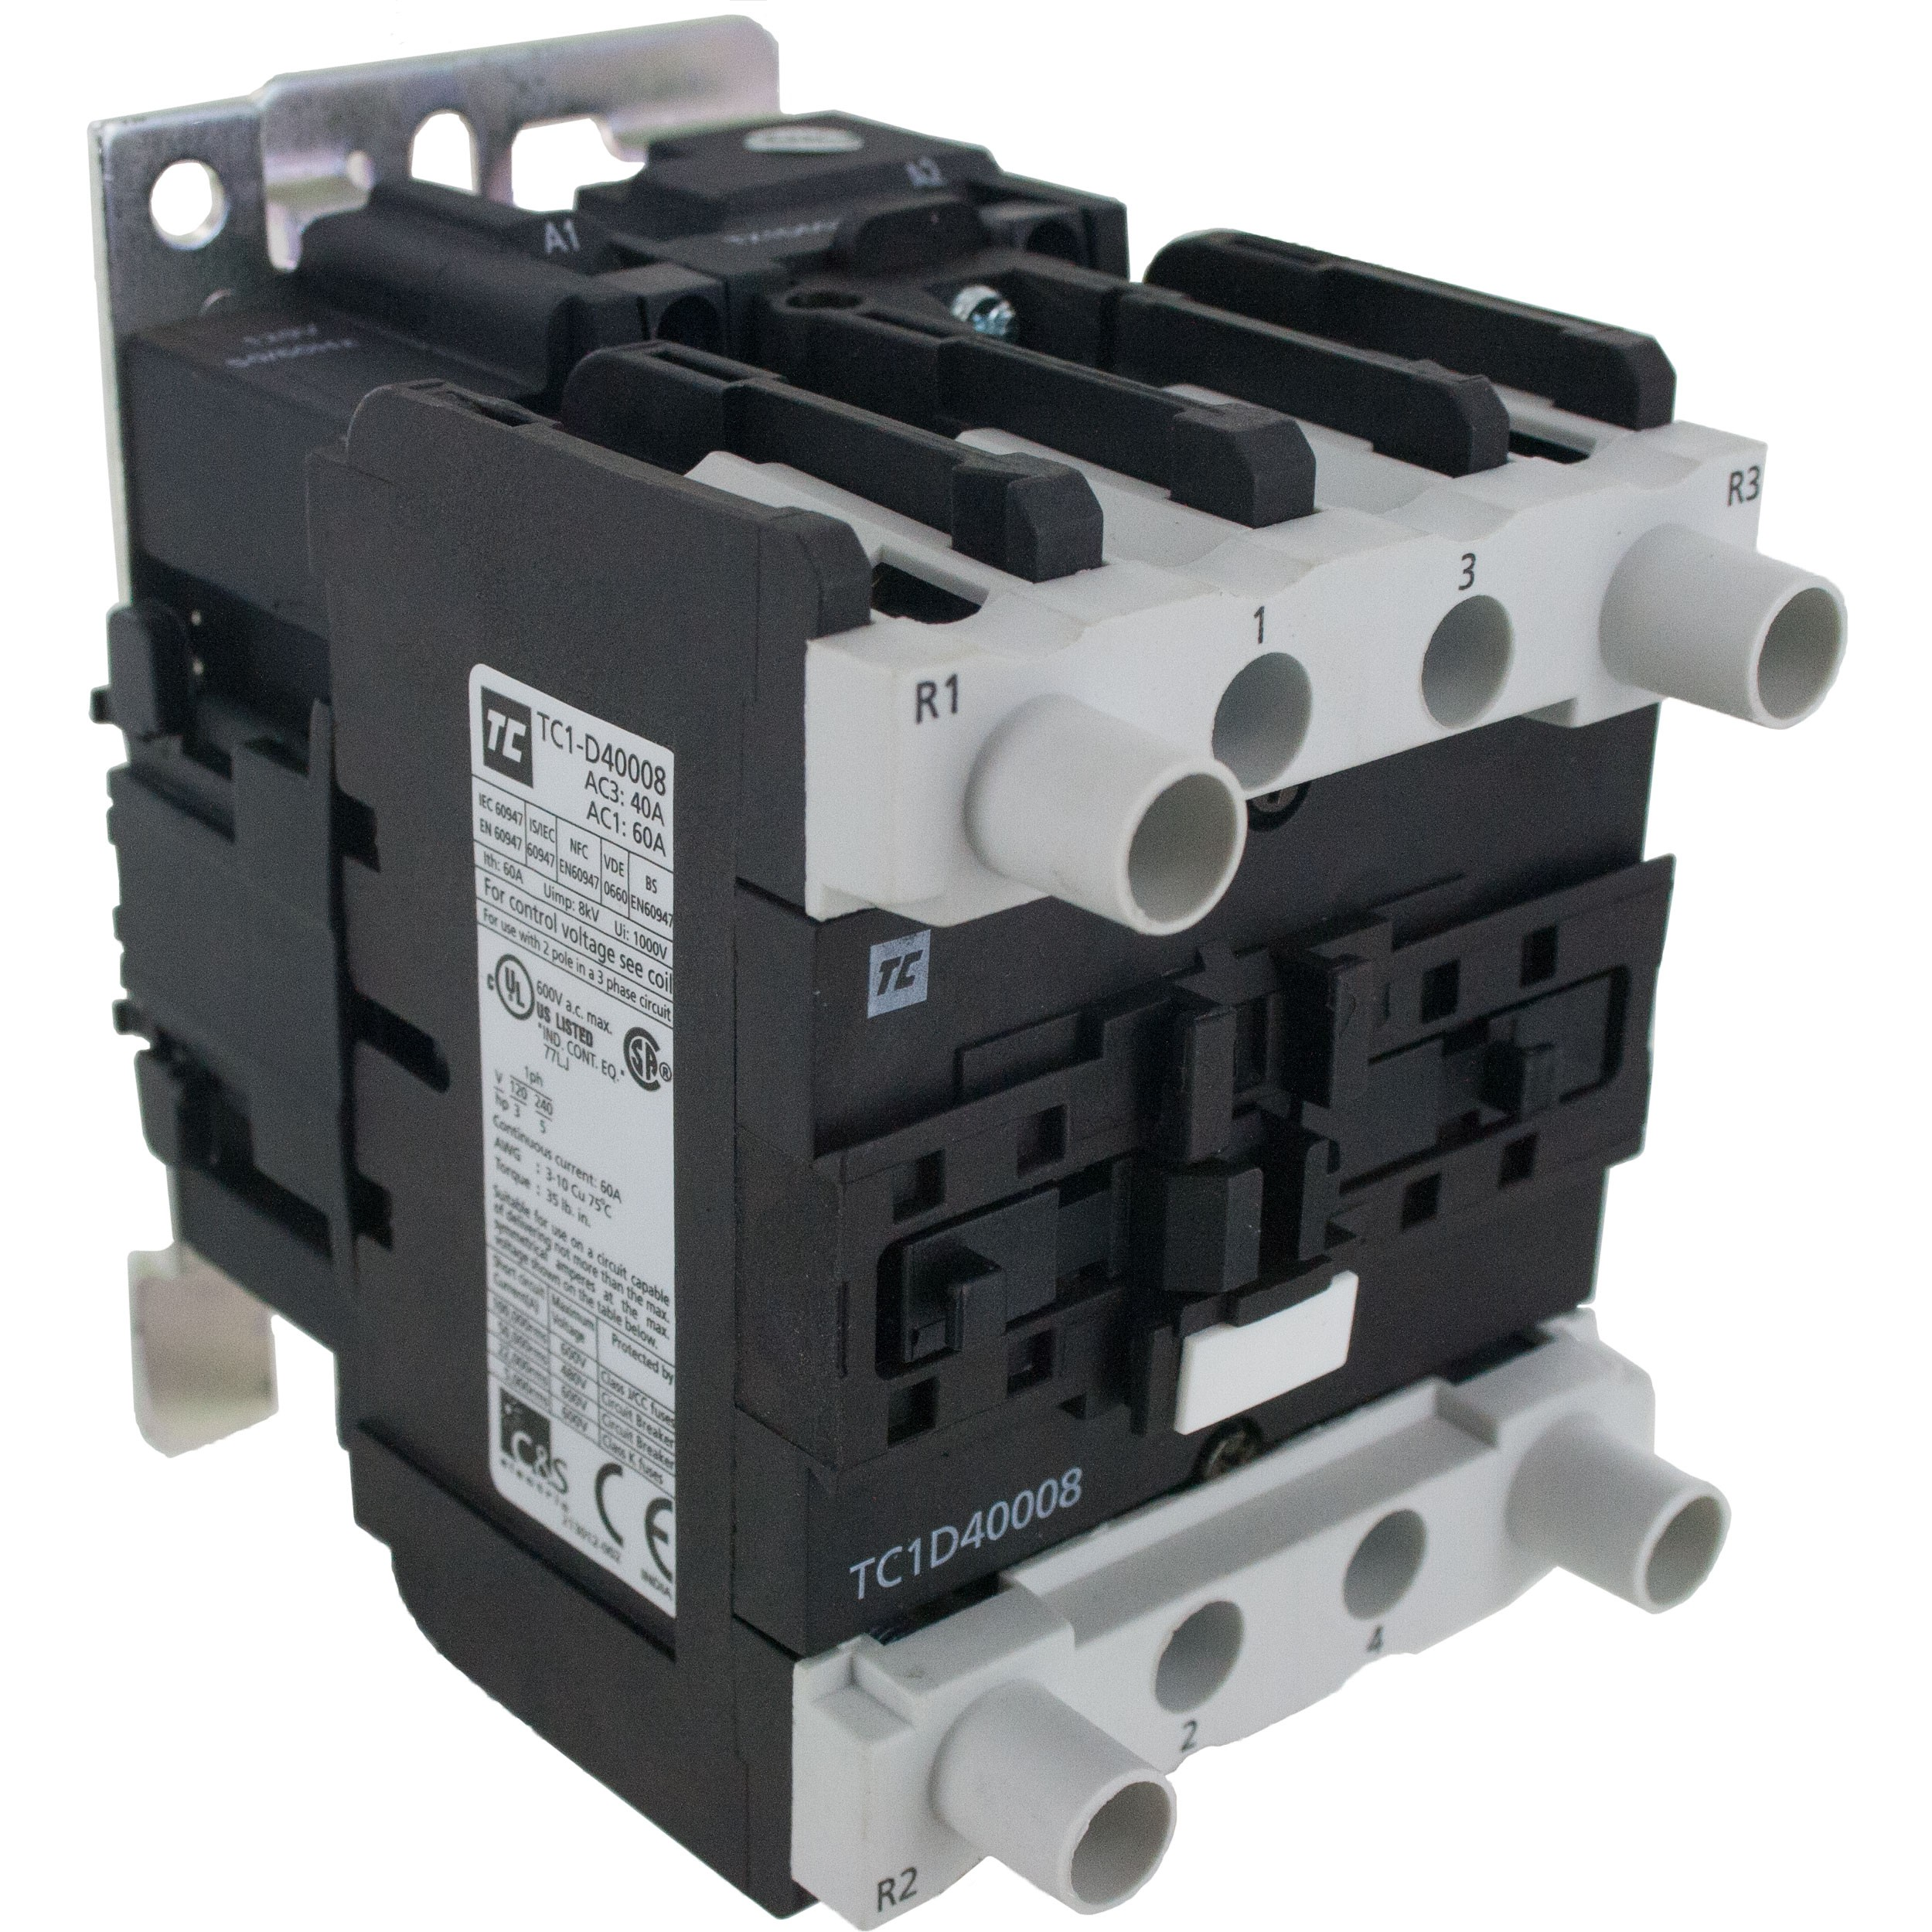 4 Pole Contactor 40 Amp 2 N/O - 2 N/C 24 Volt AC Coil Angle